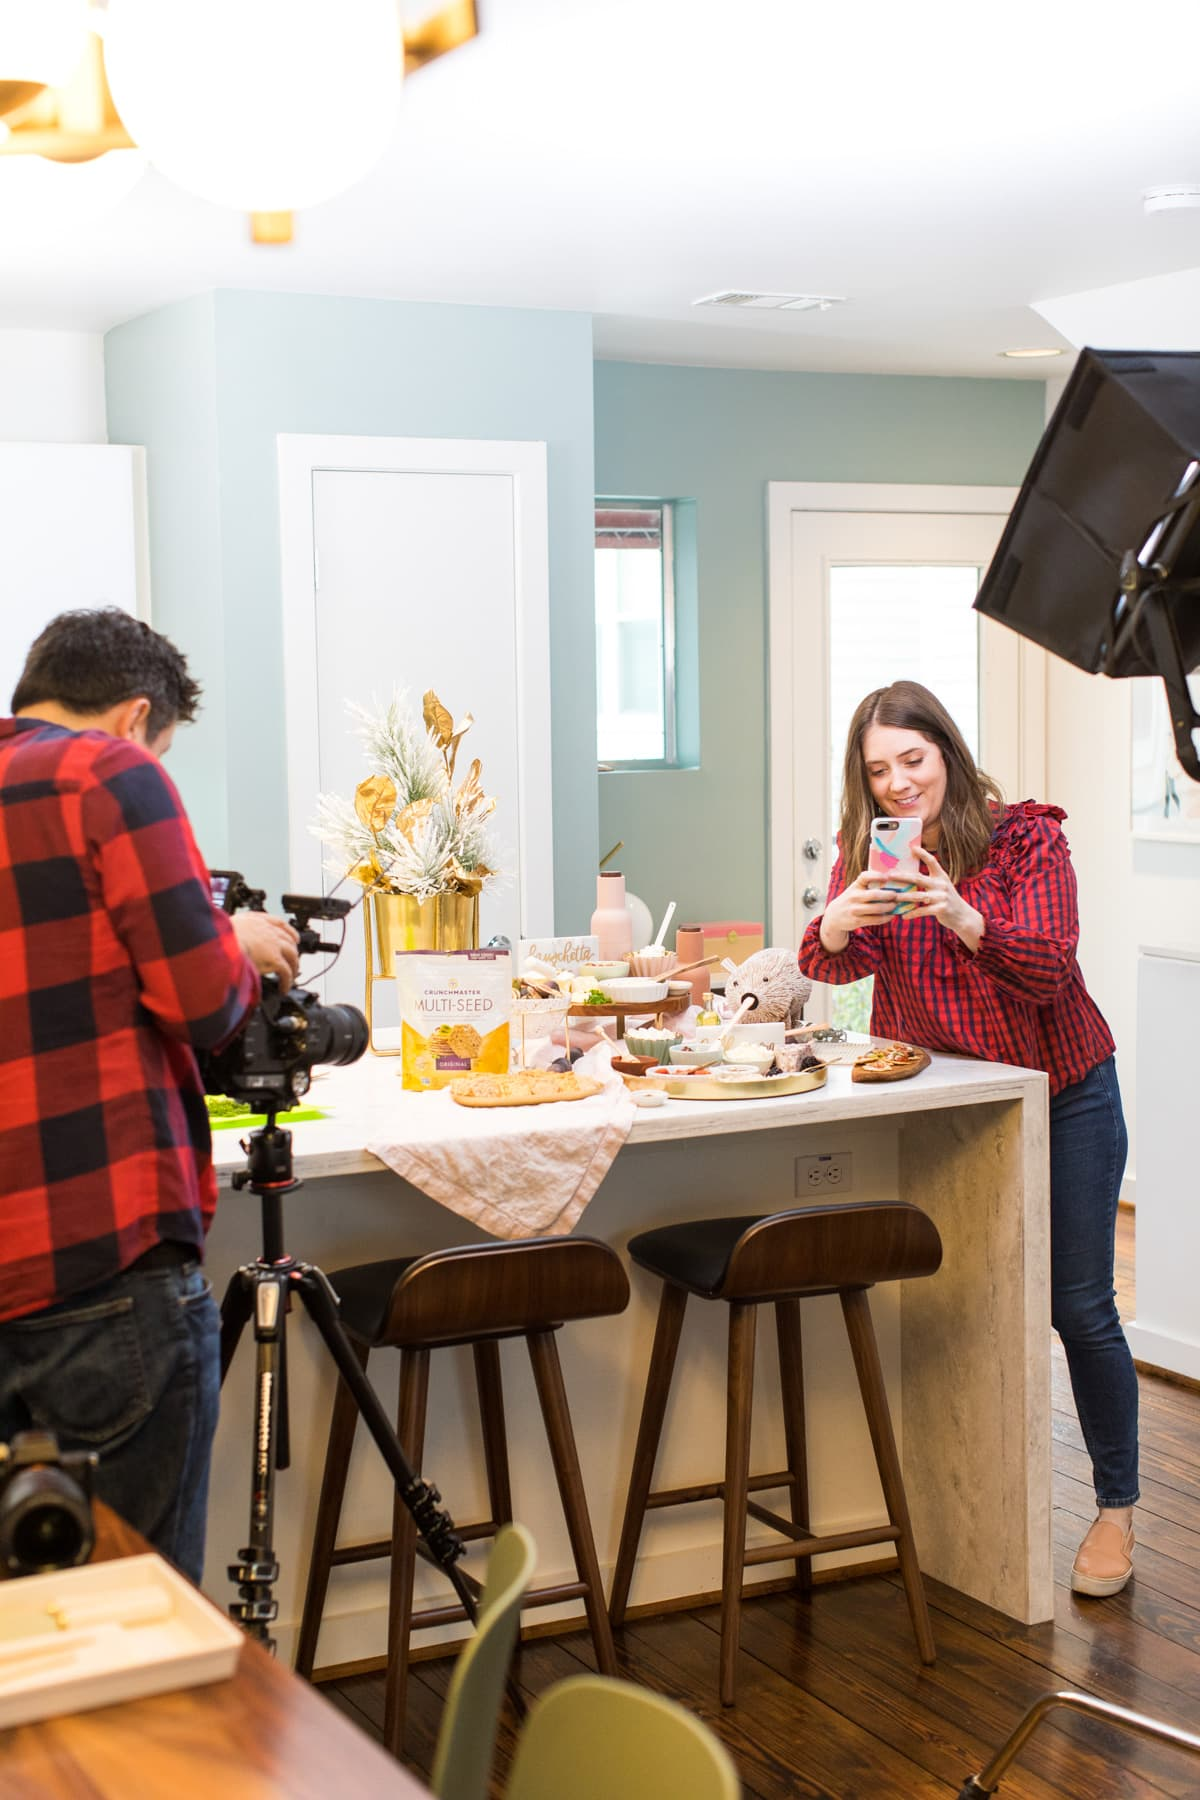 Cameras on cameras on cameras! How to Make a Bruschetta Recipe Bar by top Houston lifestyle blogger Ashley Rose of Sugar & Cloth #recipe #bruschetta #bar #ideas #entertaining #howto #easy